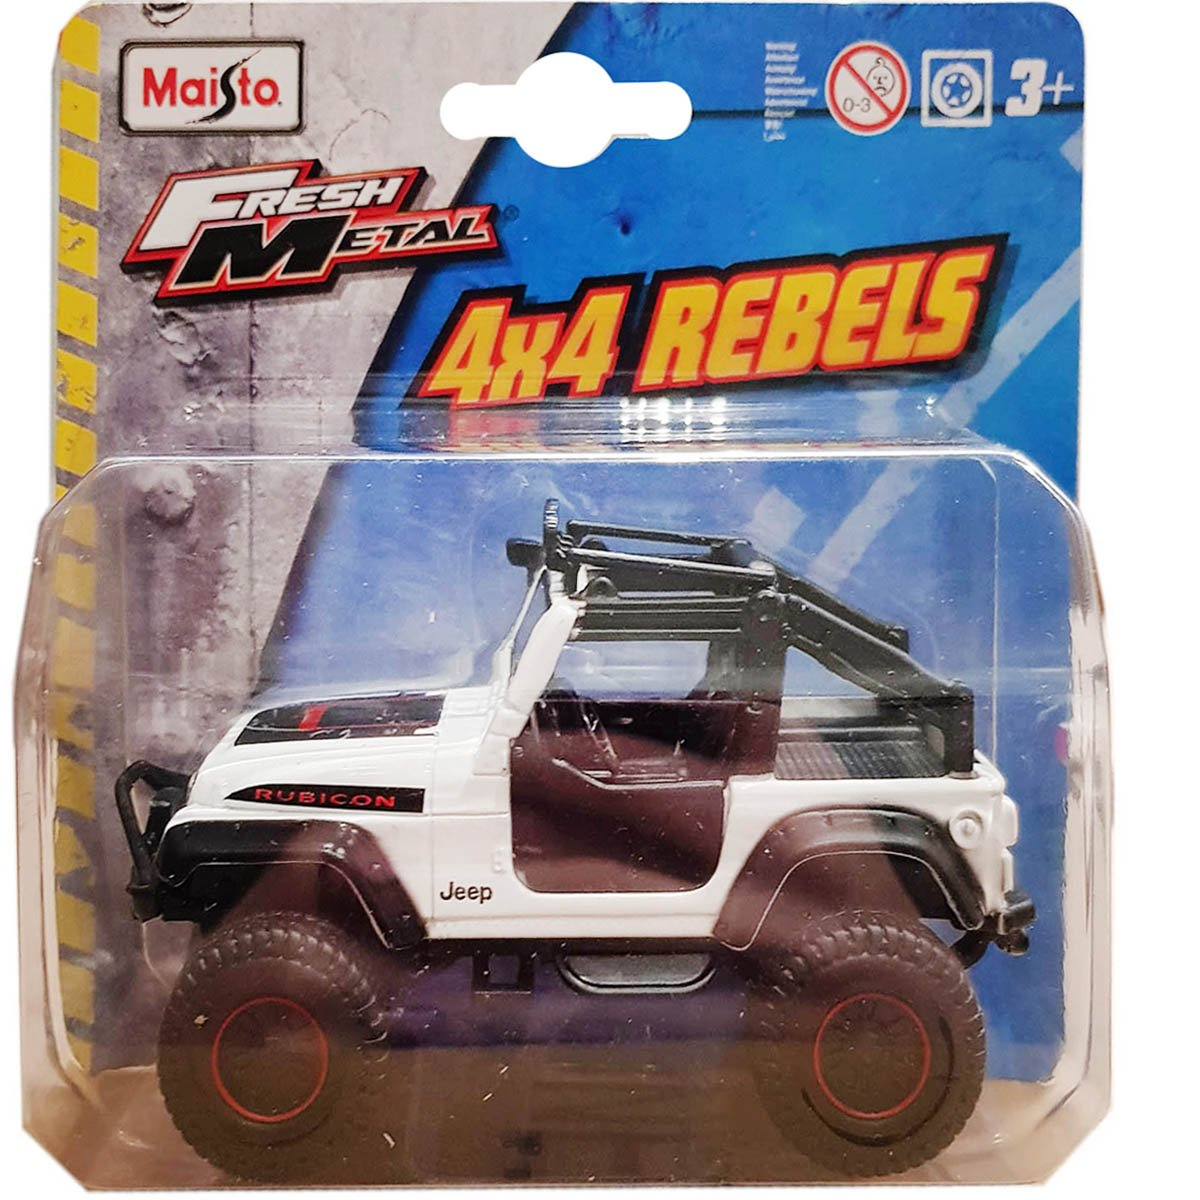 Masinuta Maisto Fresh Metal, 4X4 Rebels, 11 cm, 1:64, Jeep alb